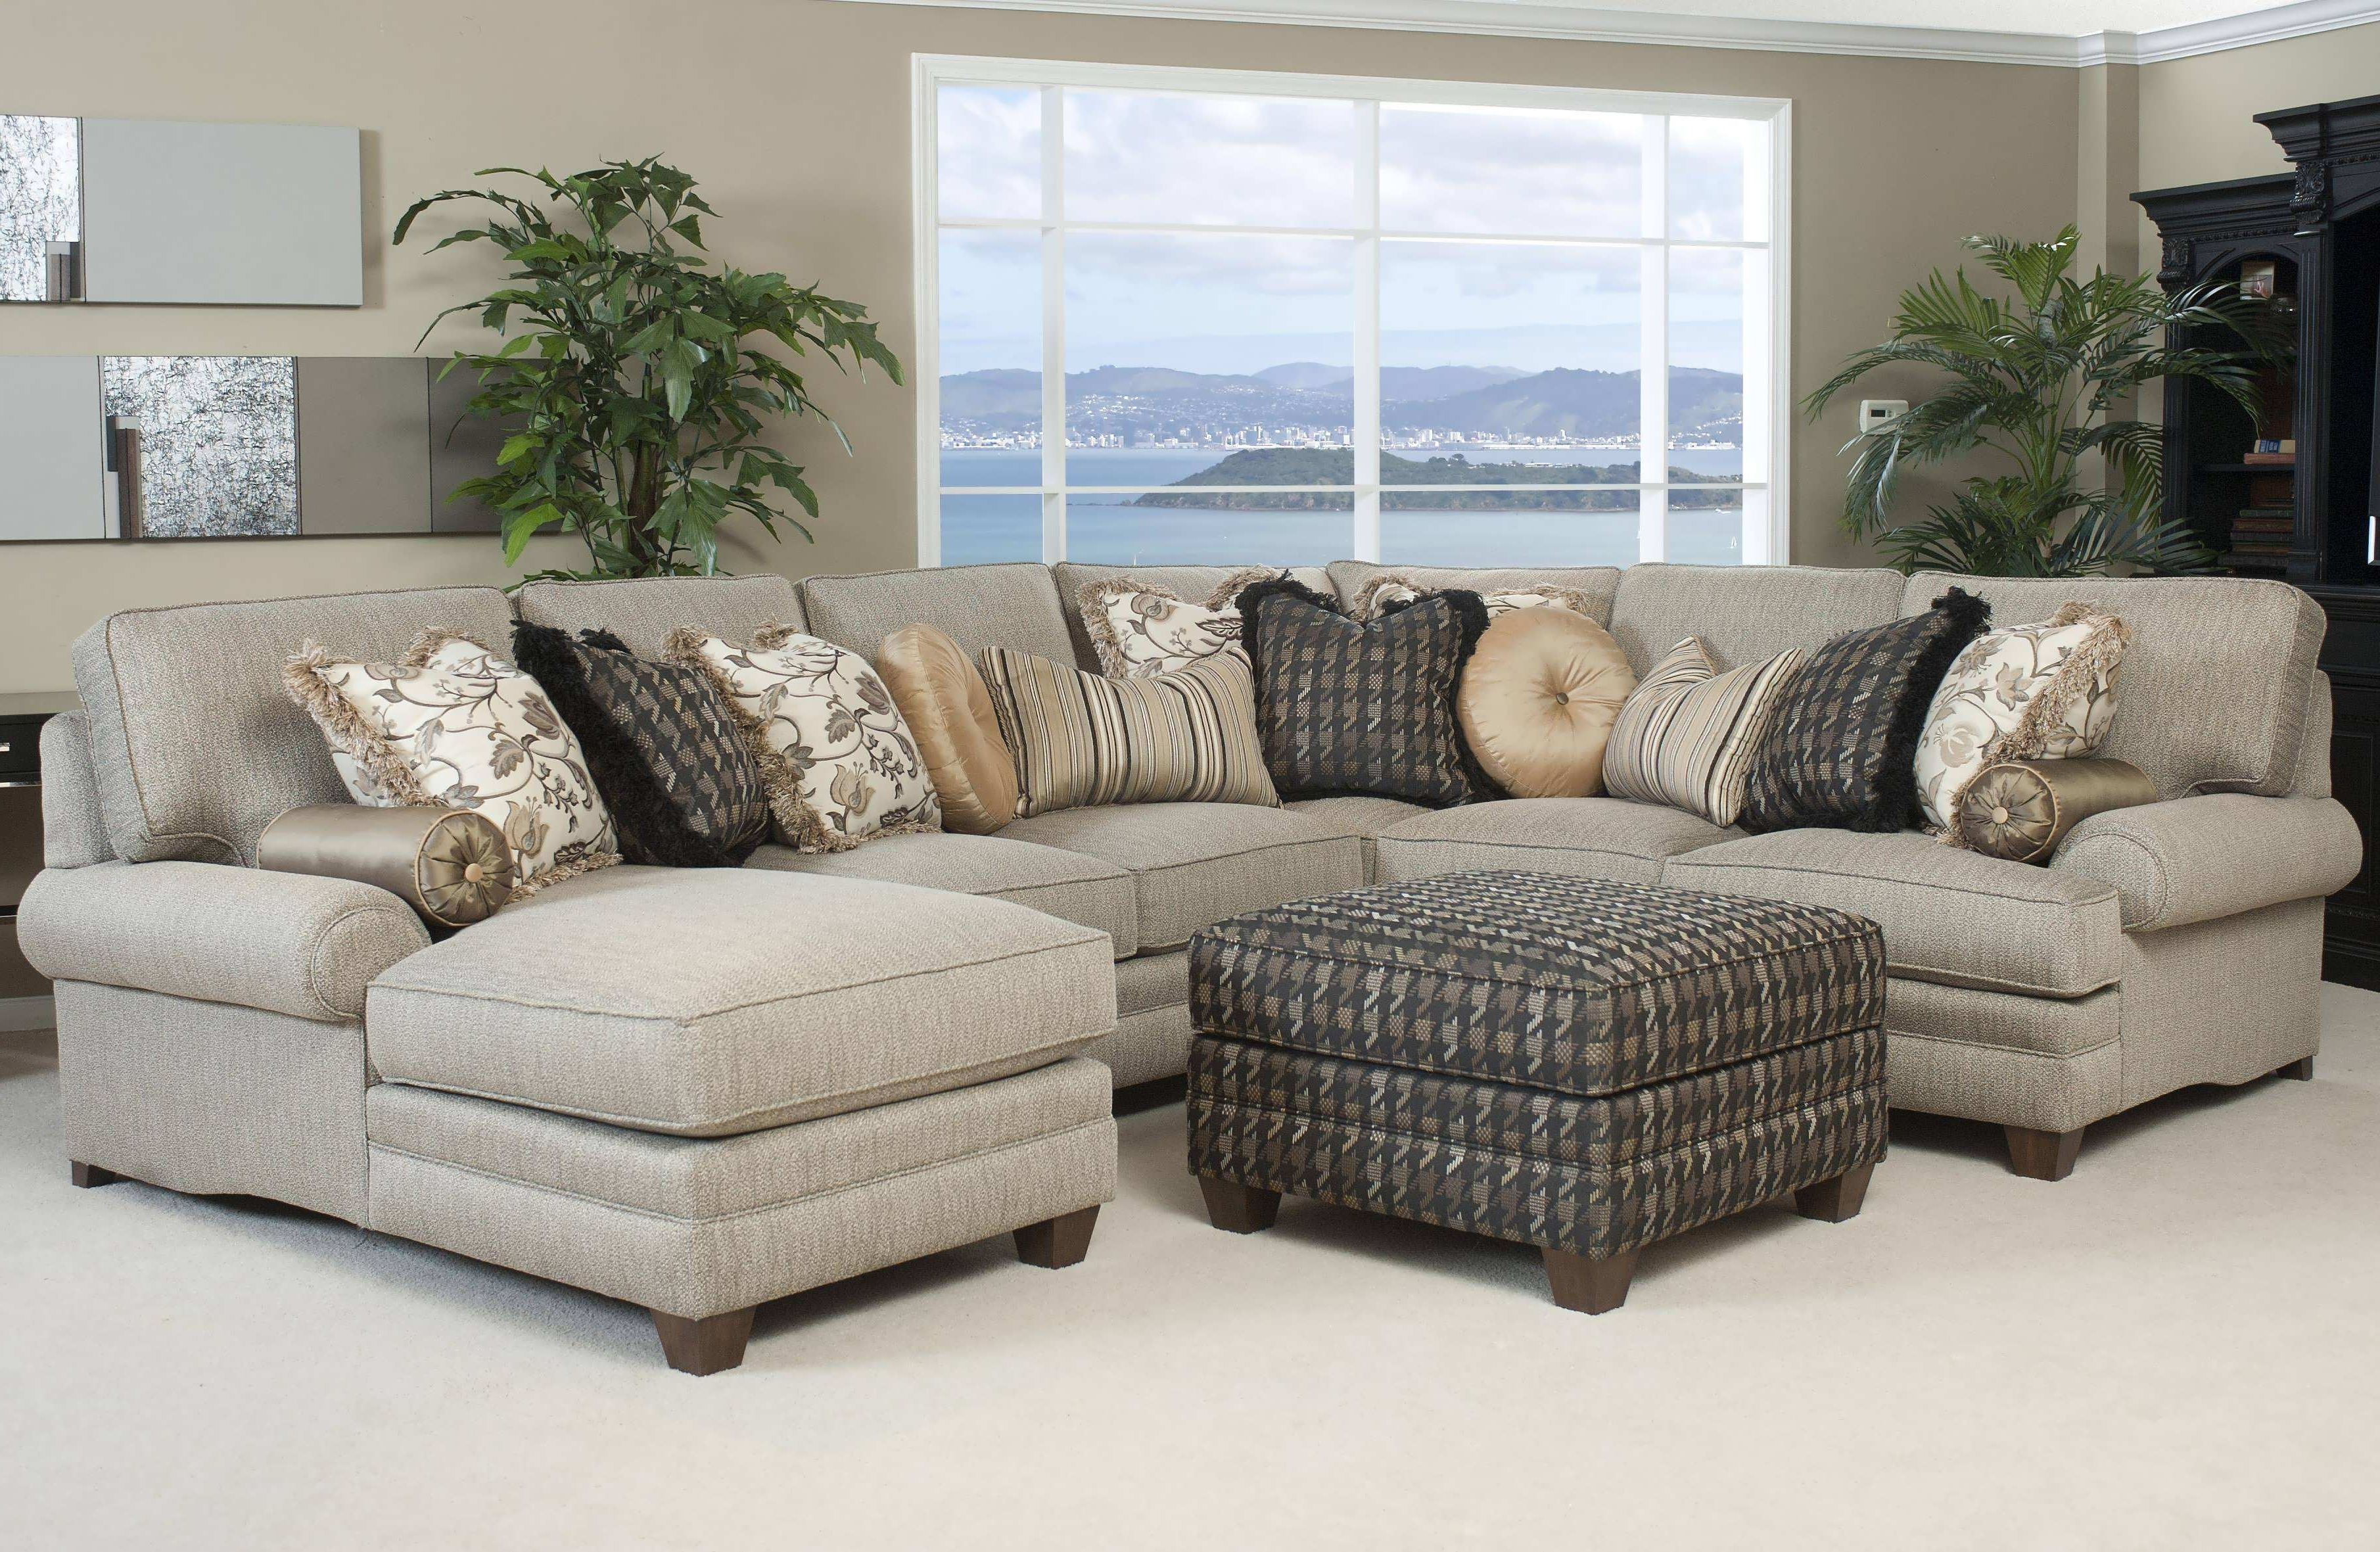 Sweet Sectionals Chaise Modular Lounge In Sectional Sofas L Shaped For 2017 Sofa Sectionals With Chaise (View 6 of 15)